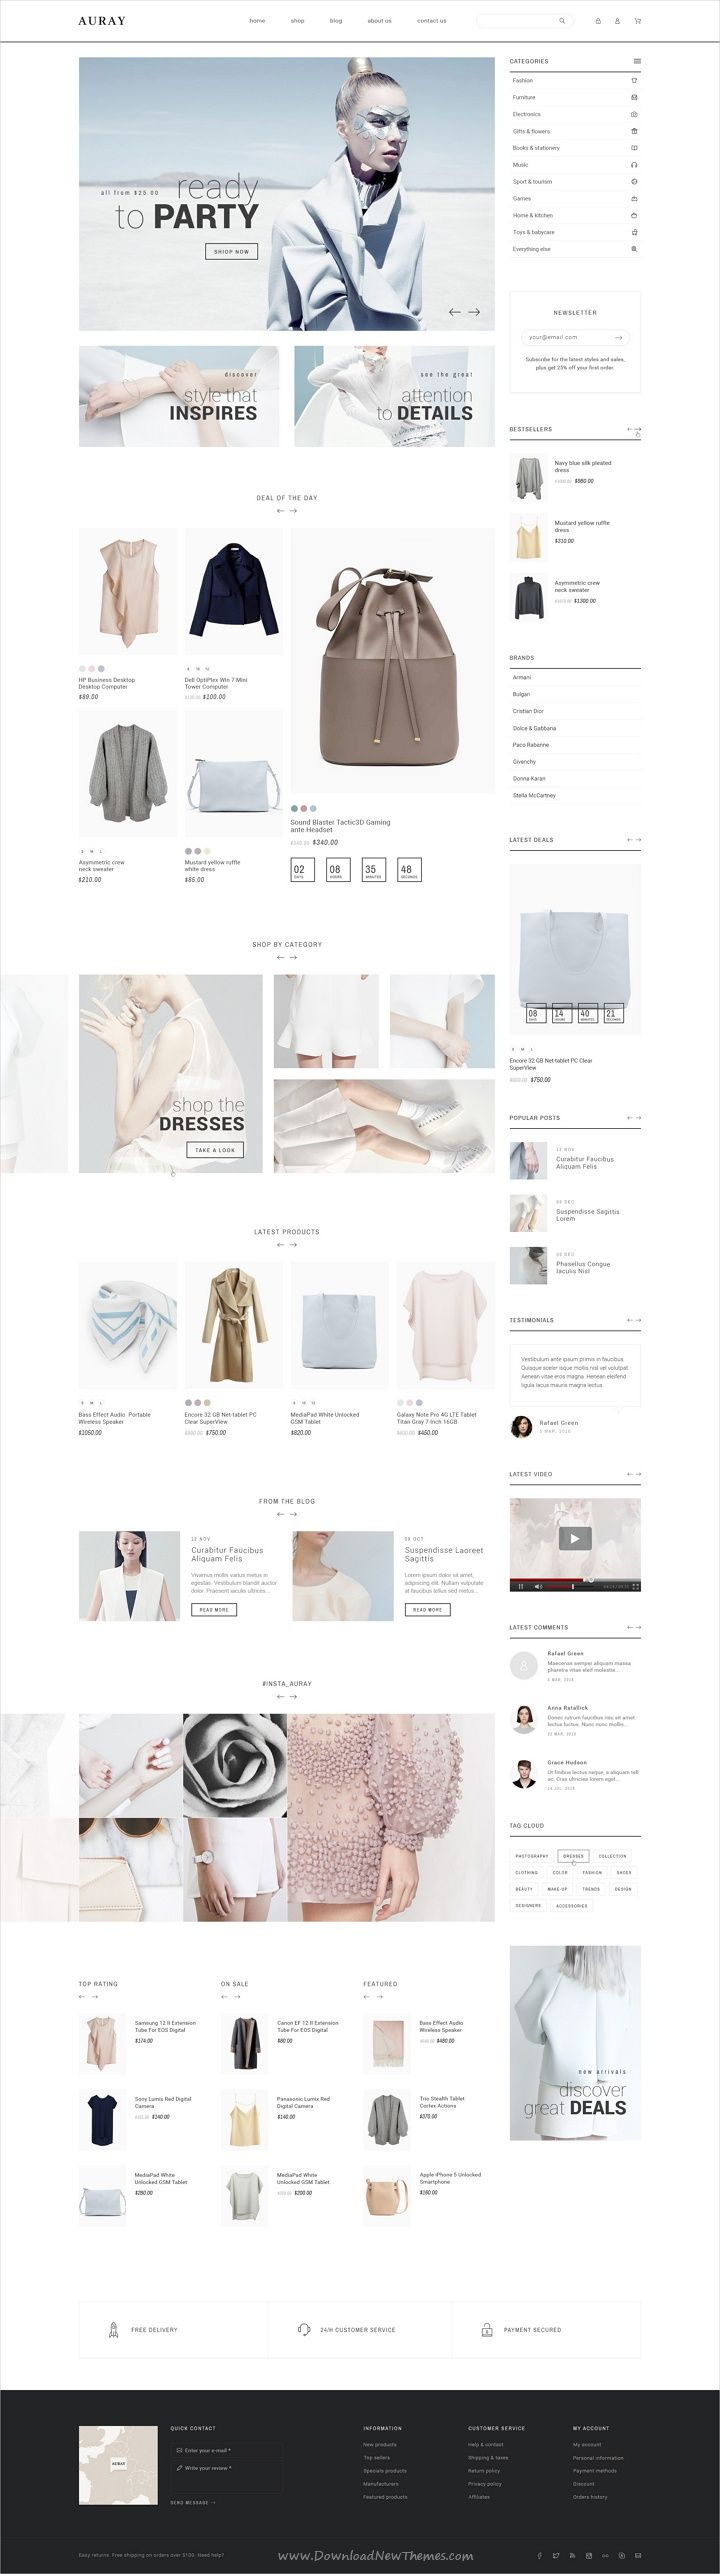 Auray is clean and modern design #creative PSD #theme for stunning #eCommerce website with 10 niche homepage layouts and 45 layered PSD files download now > https://themeforest.net/item/auray-ecommerce-psd-template/19751094?ref=Datasata